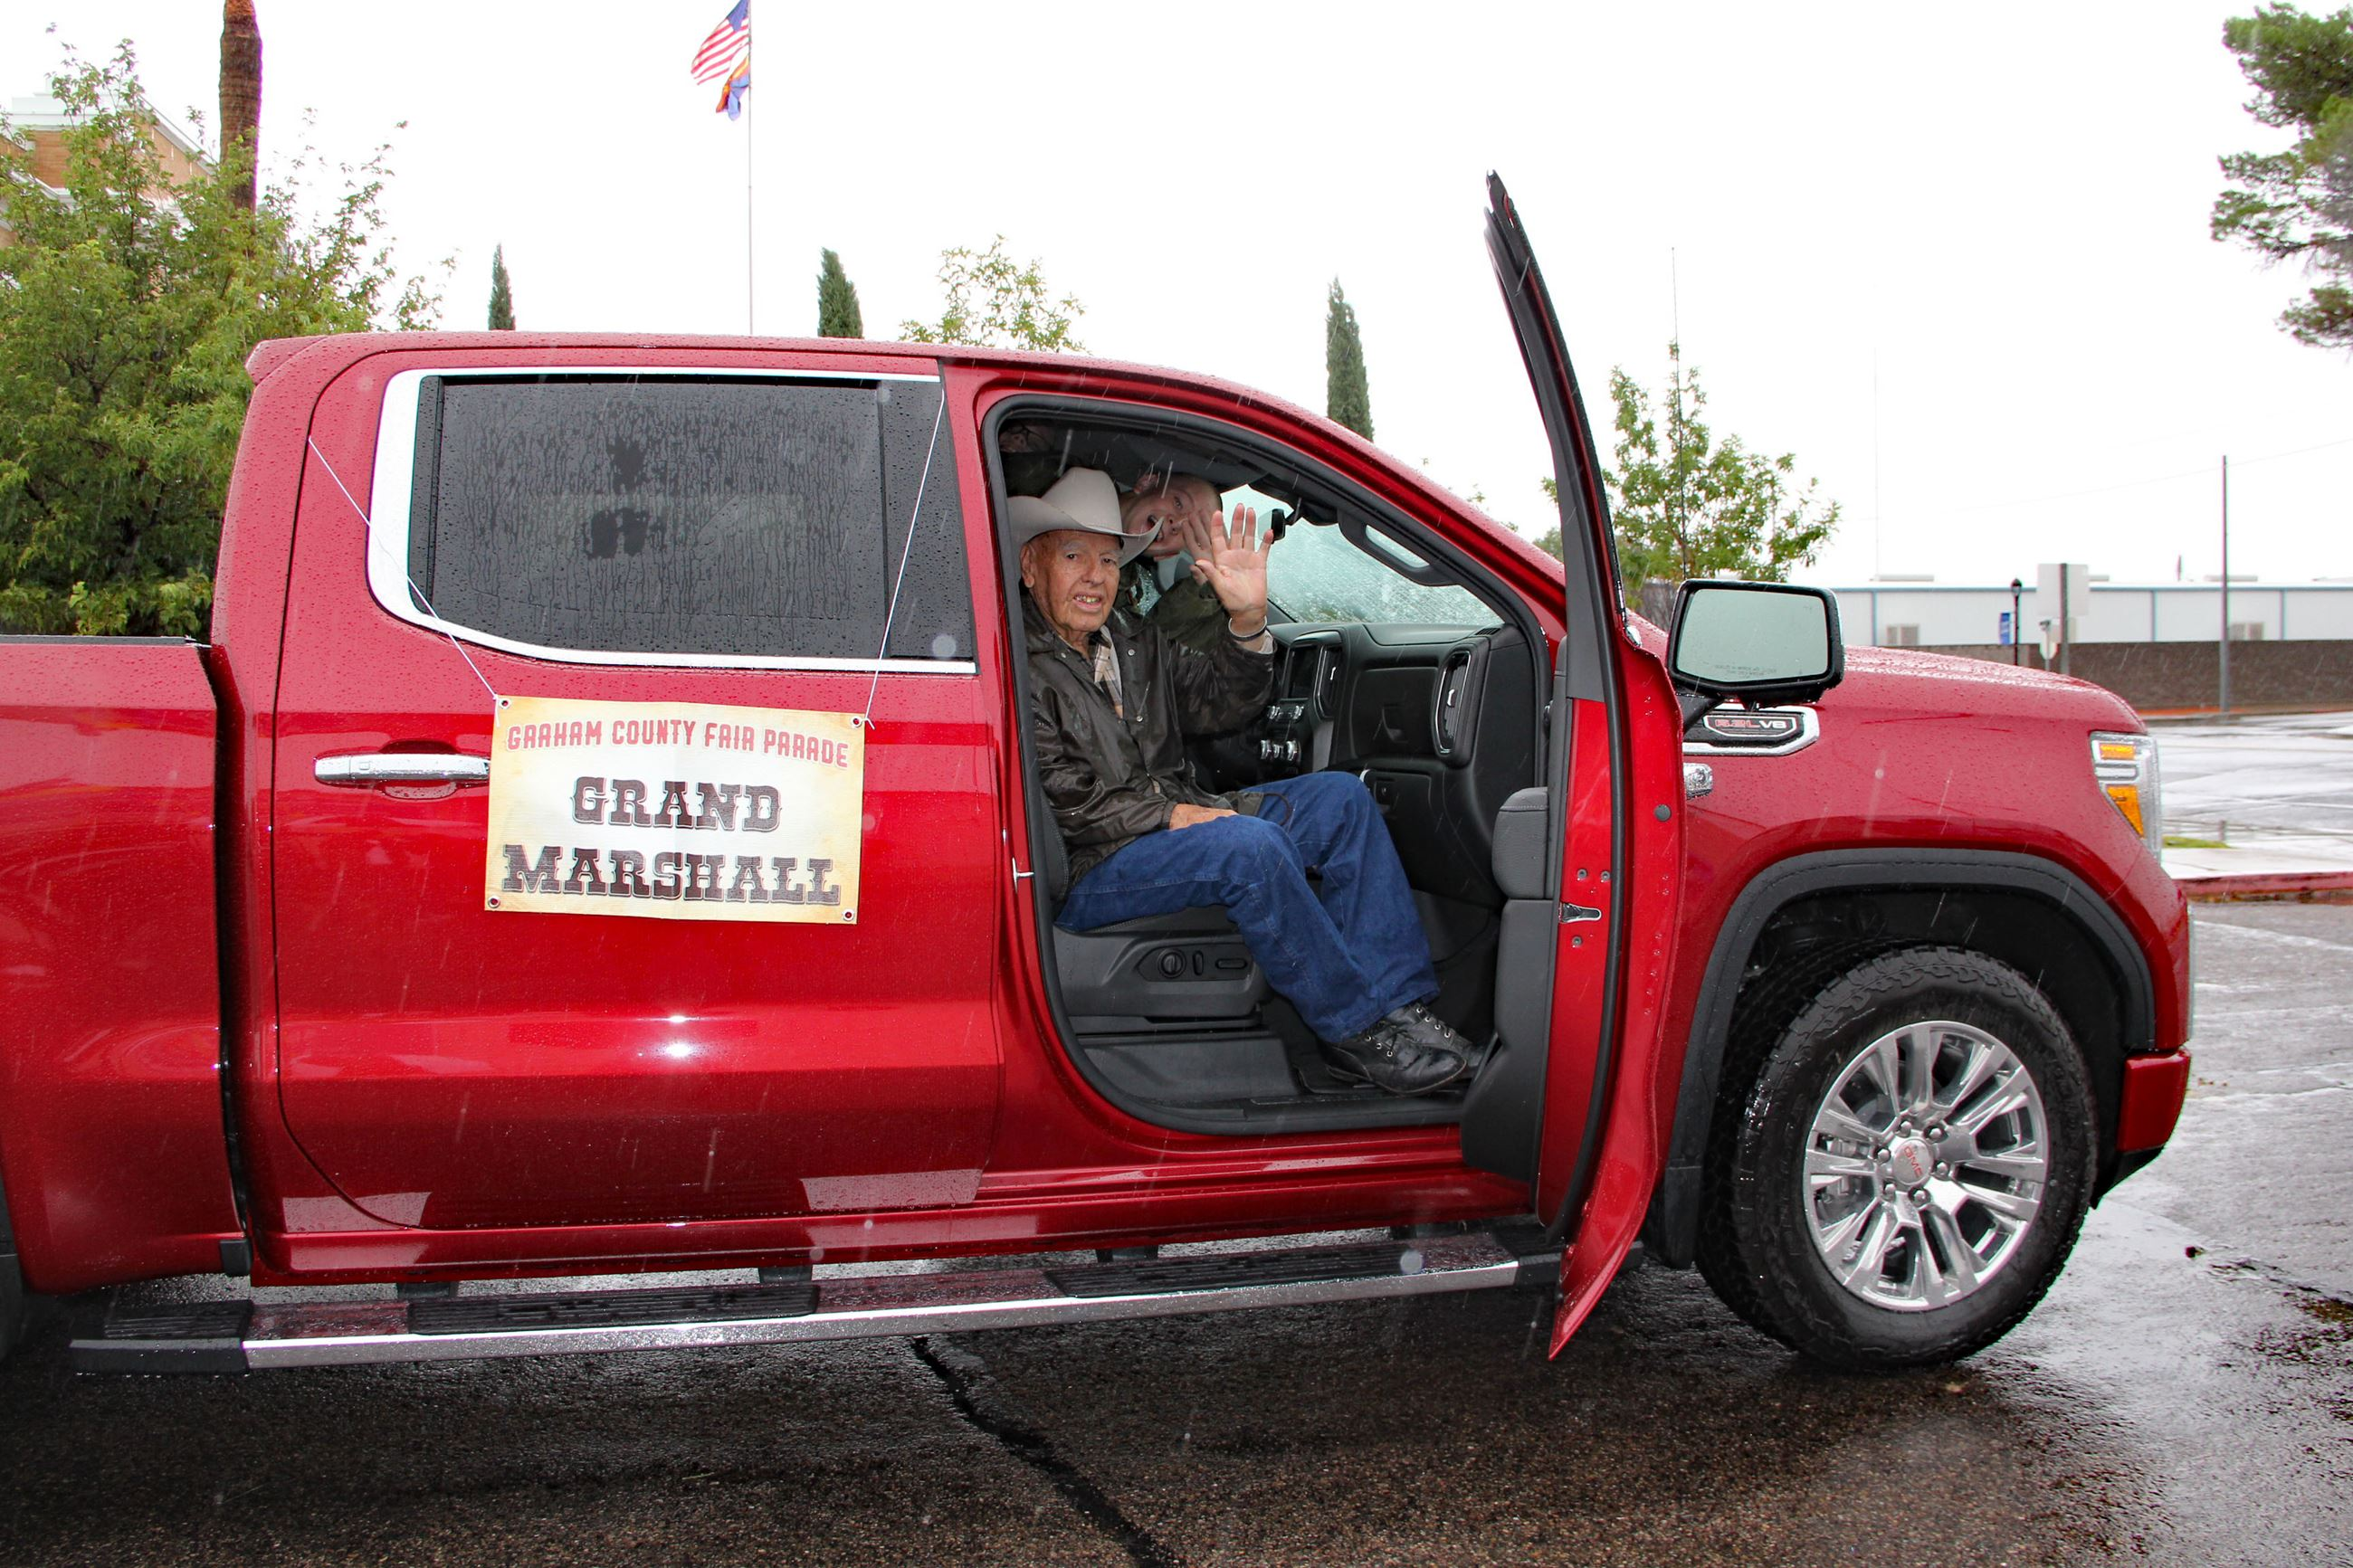 Grand Marshall in red pickup truck